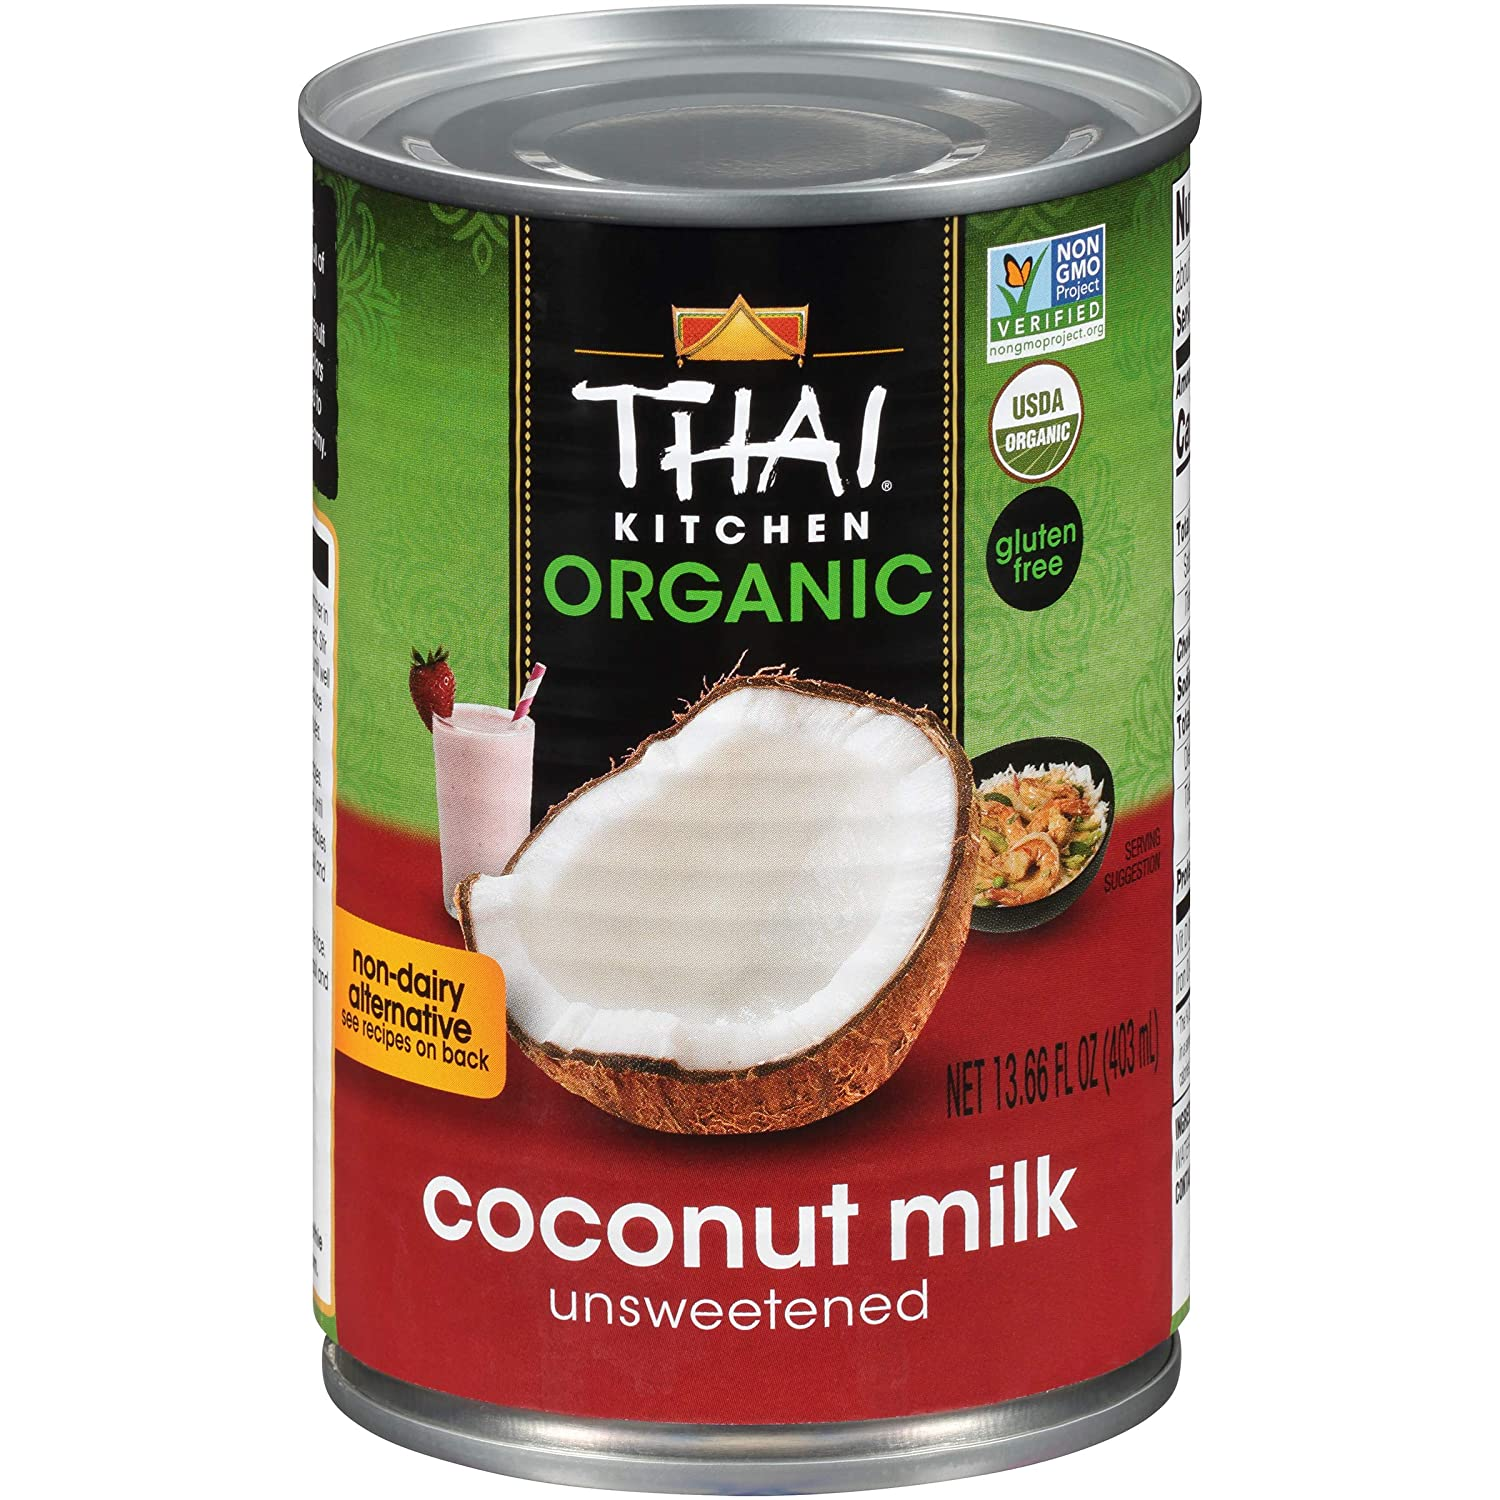 Thai Kitchen Organic Unsweetened Coconut Milk